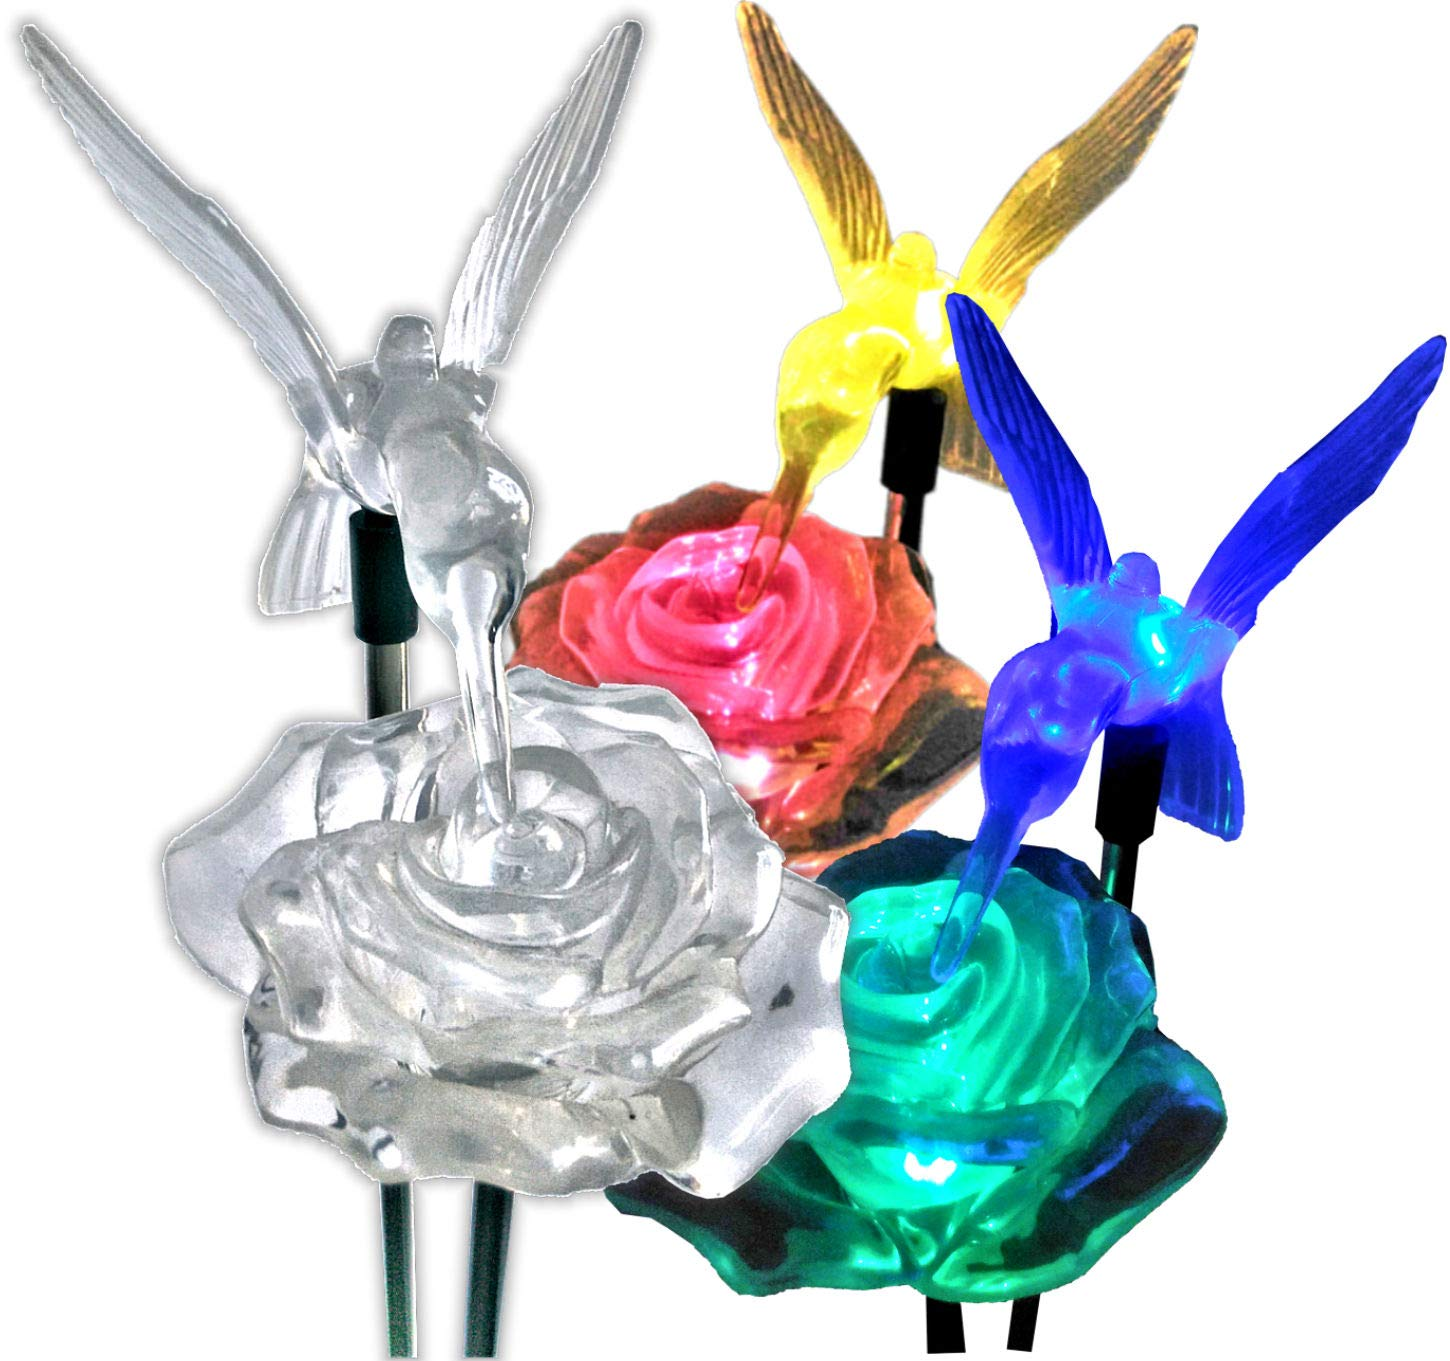 Brilliant & Mo Stunning 2 Solar Rose Lights with 2 Solar Hummingbird Lights Garden Stakes For Home Patio Deck Lawn Yard Decor